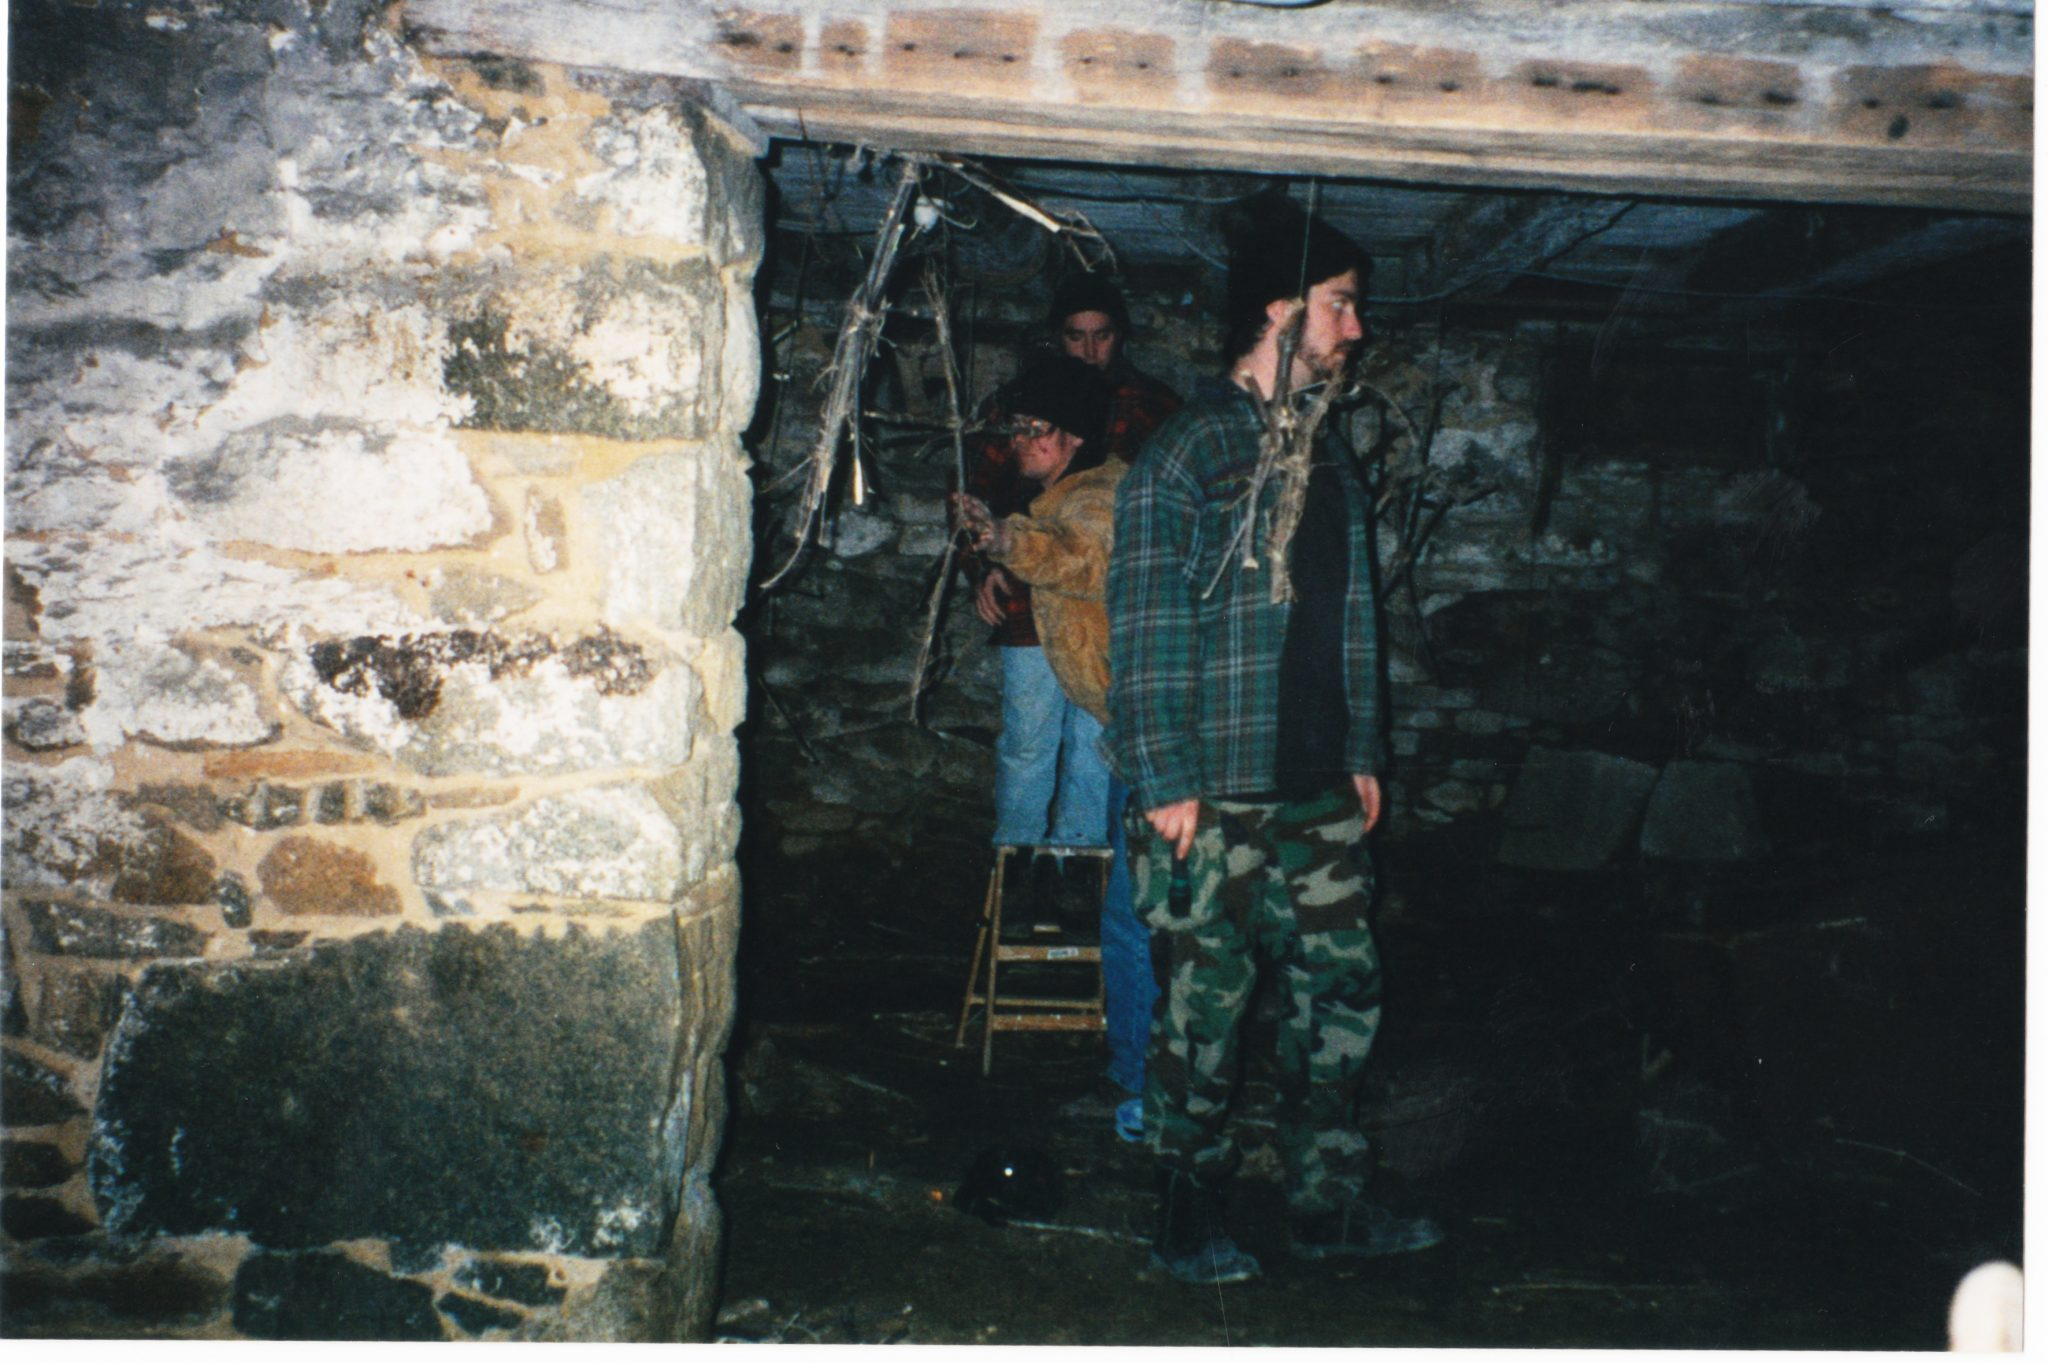 Pickup - The Making of The Blair Witch Project: Part 7 - The Embiggening